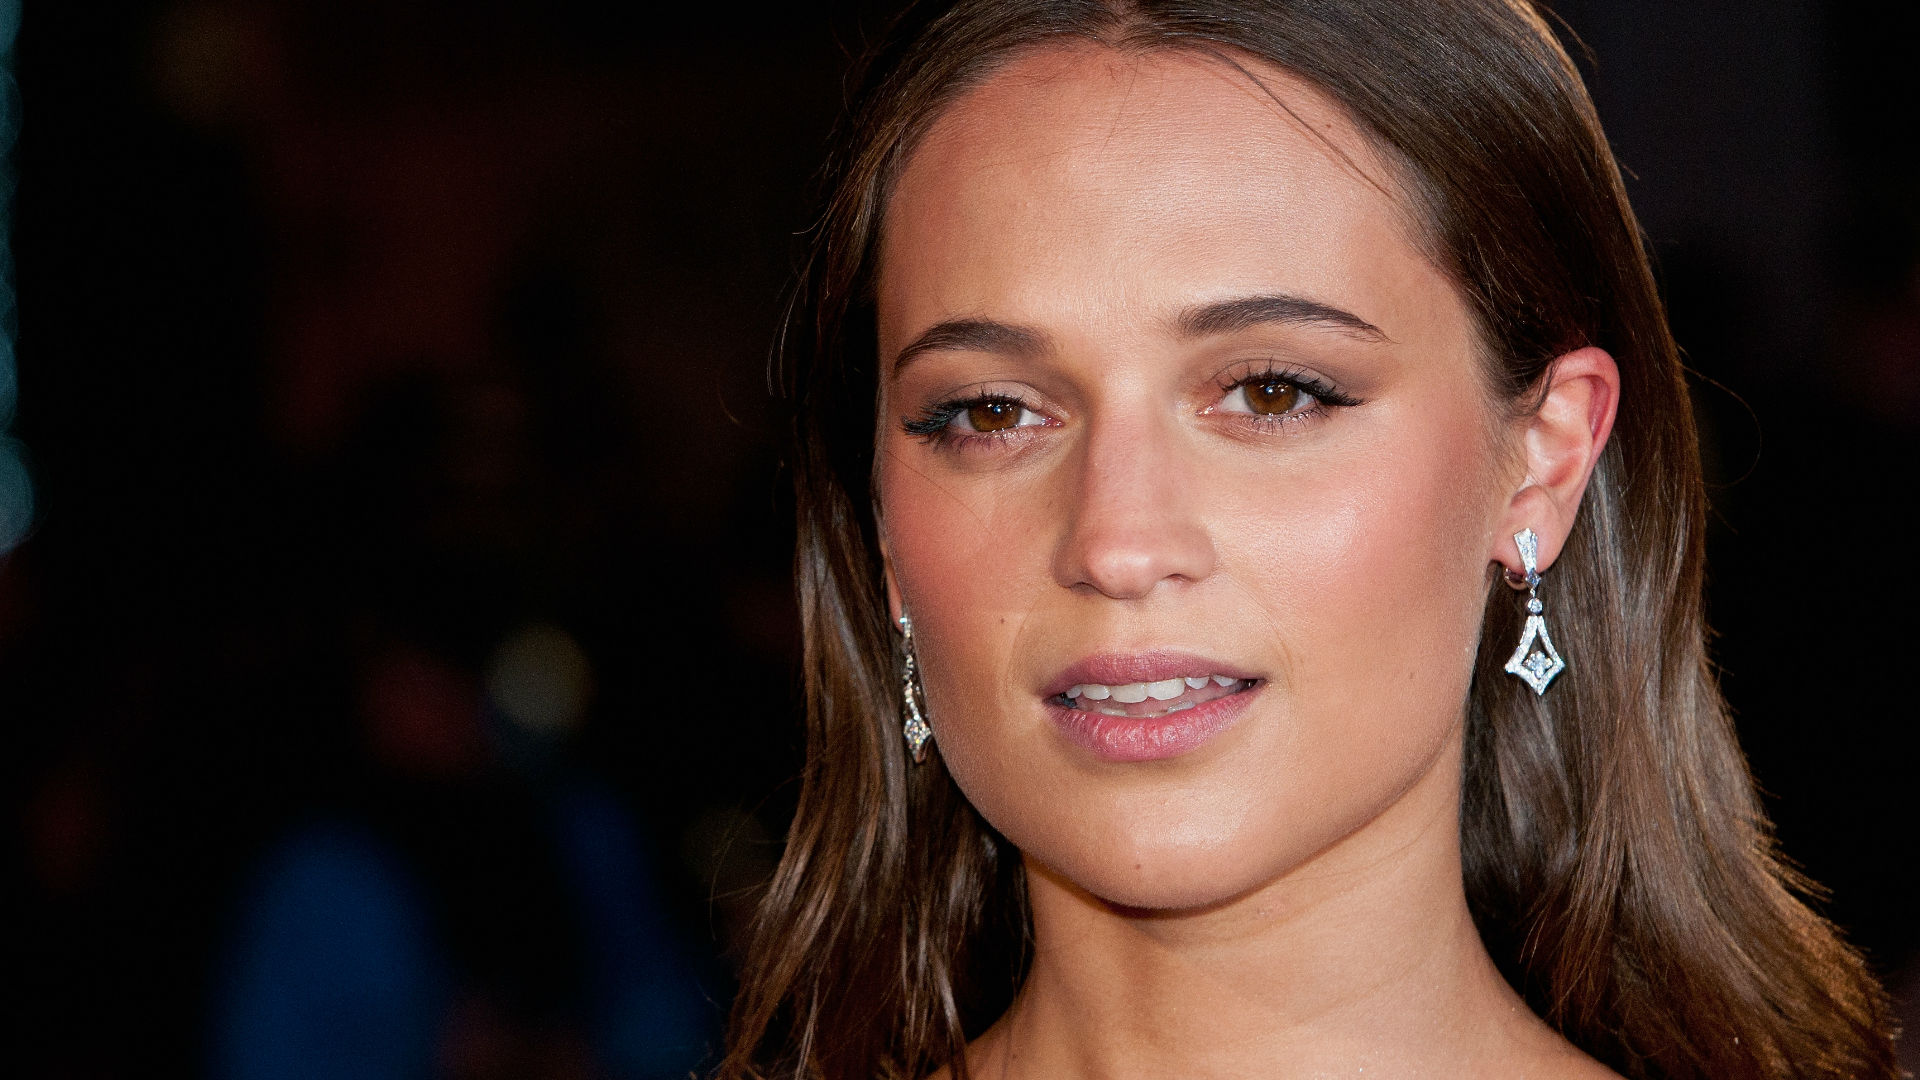 Tomb Raider star Alicia Vikander